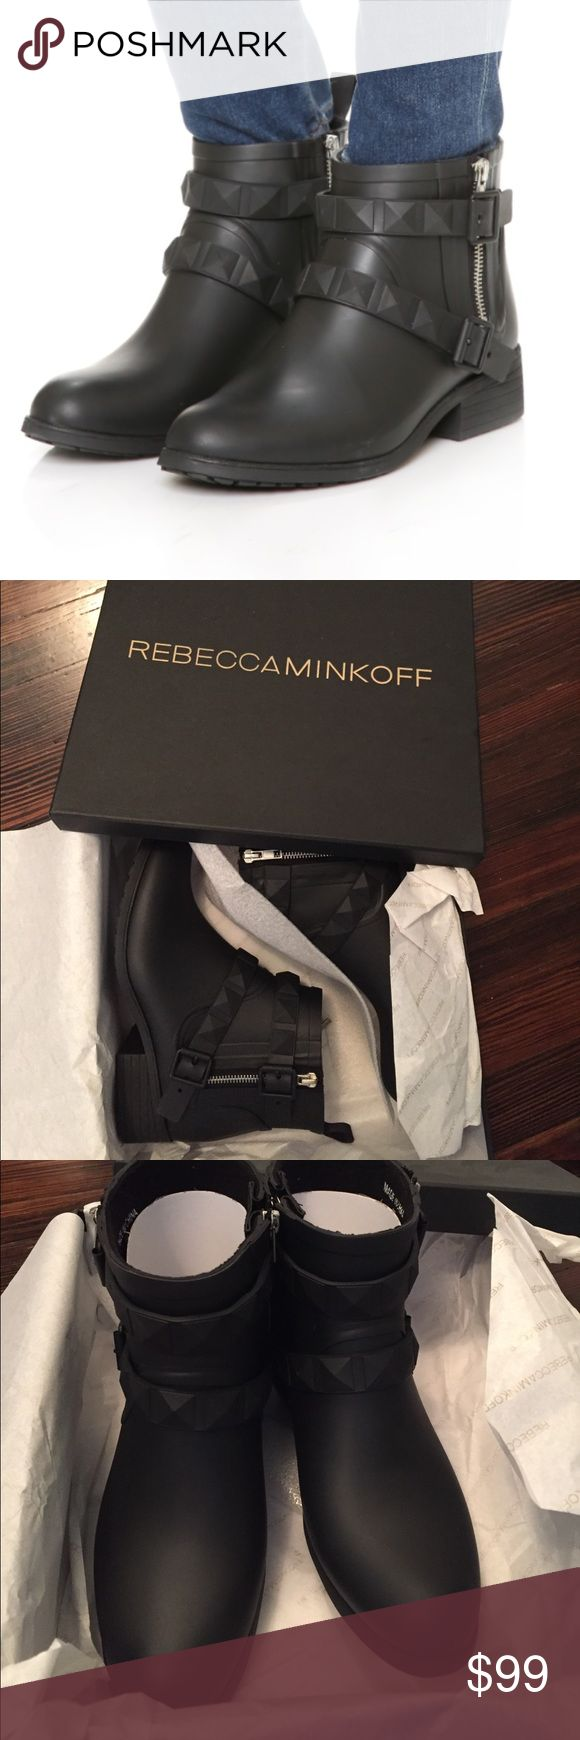 "Rebecca Minkoff Quincy Black waterproof boots! Brand new in box!   Studded straps and a side ankle zip combine for a moto-inspired rubber rain boot. The lug sole ensures slip-free style.    Style #: M3210000  Color: BLACK Size: 9 View Size & Fit Guide DETAIL & CARE Waterproof Rubber Upper Fleece Lining Rubber Sole 0.4"" Heel 3.5"" Shaft Height Rebecca Minkoff Shoes Winter & Rain Boots"